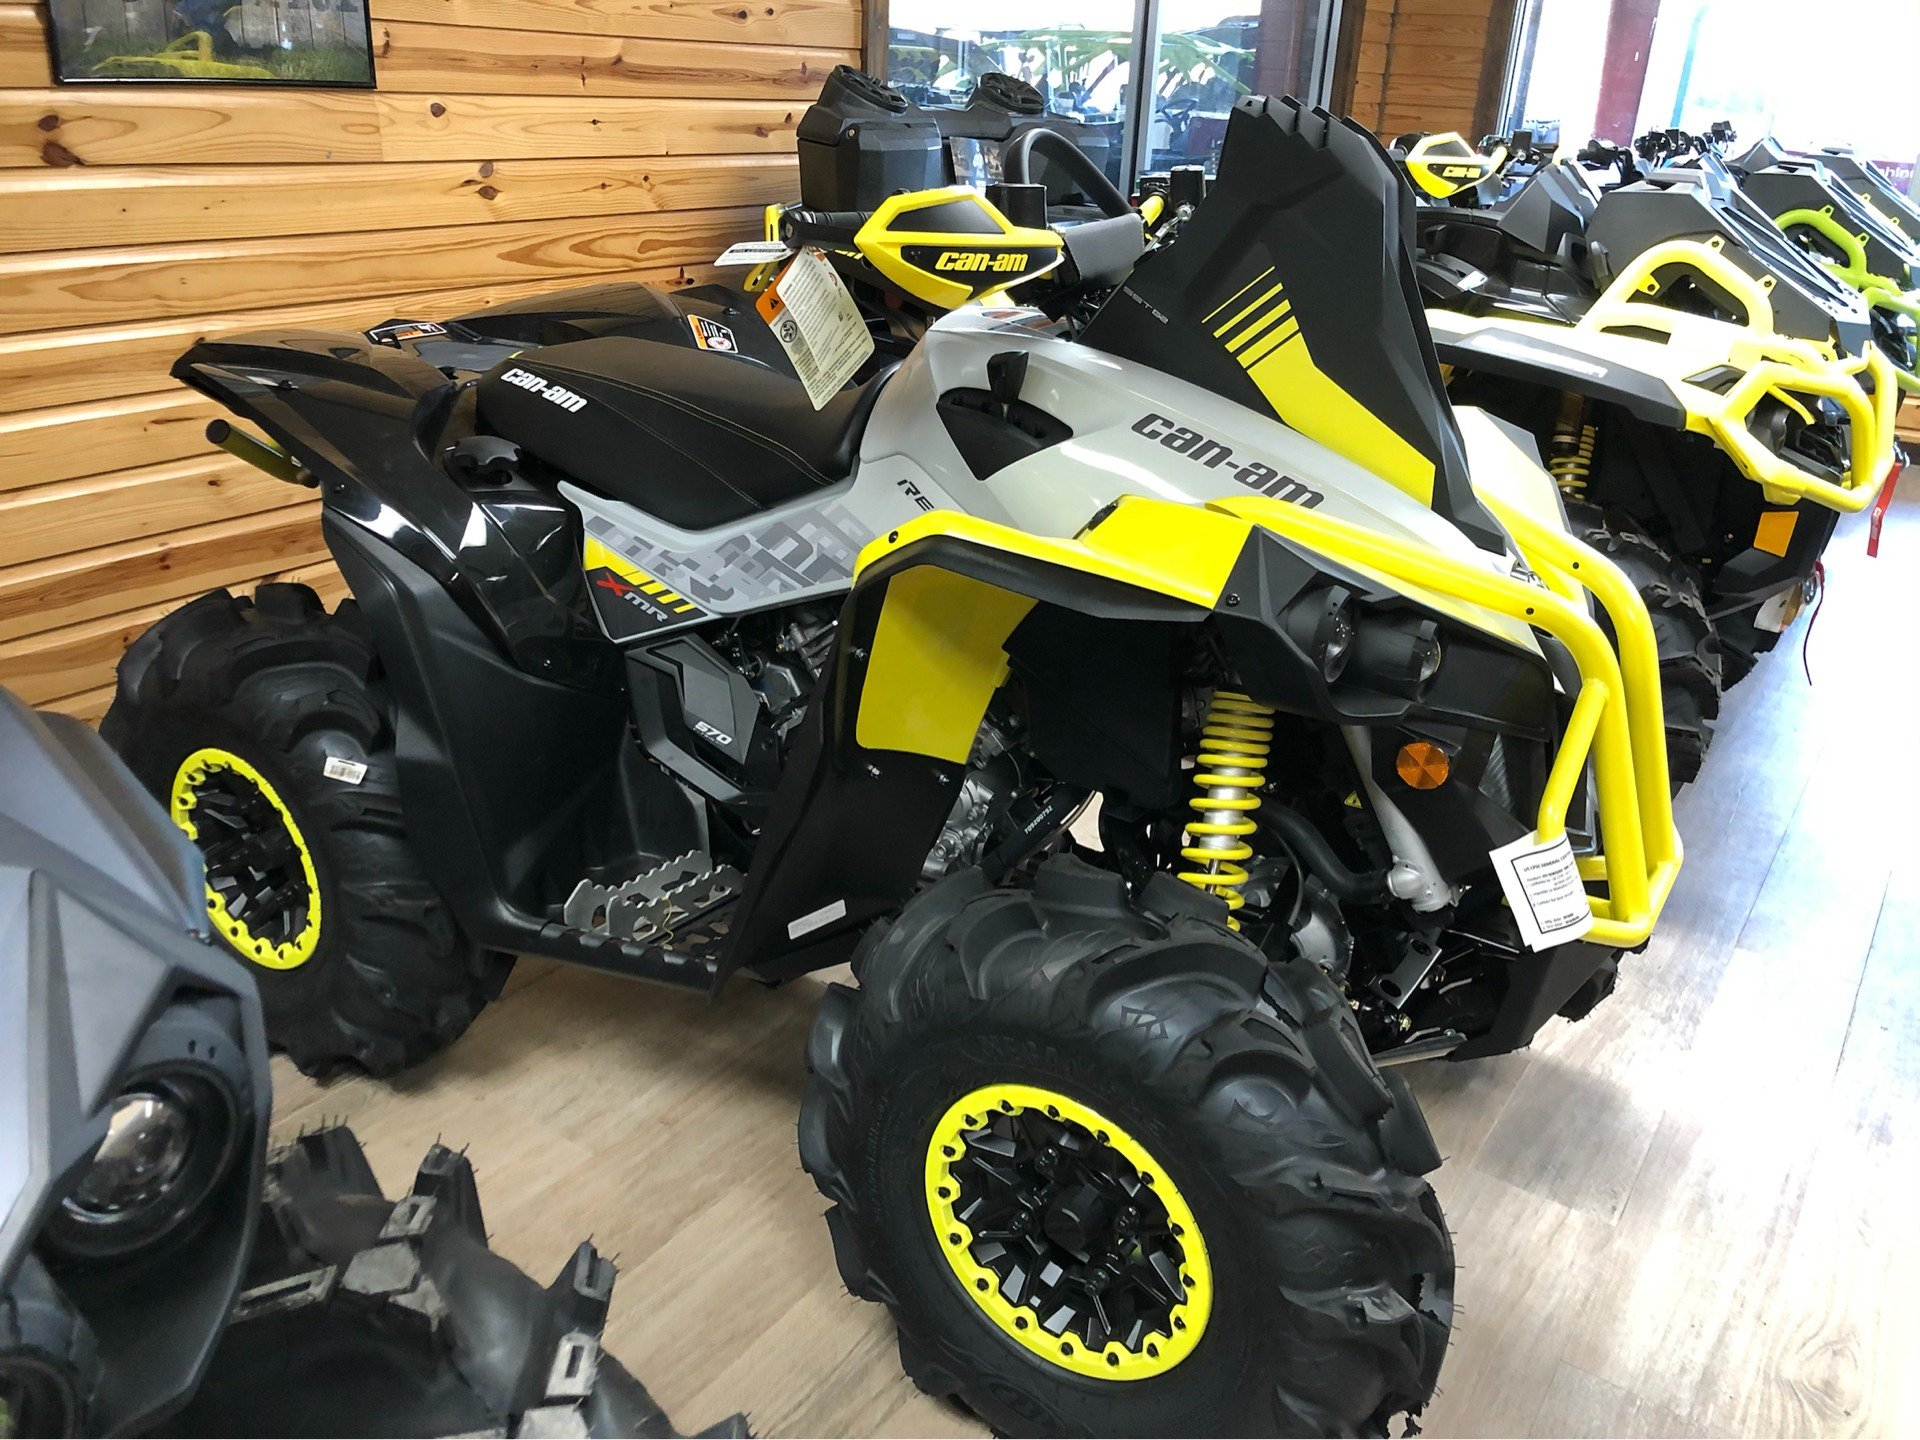 2020 Can-Am Renegade X MR 570 in Saucier, Mississippi - Photo 5